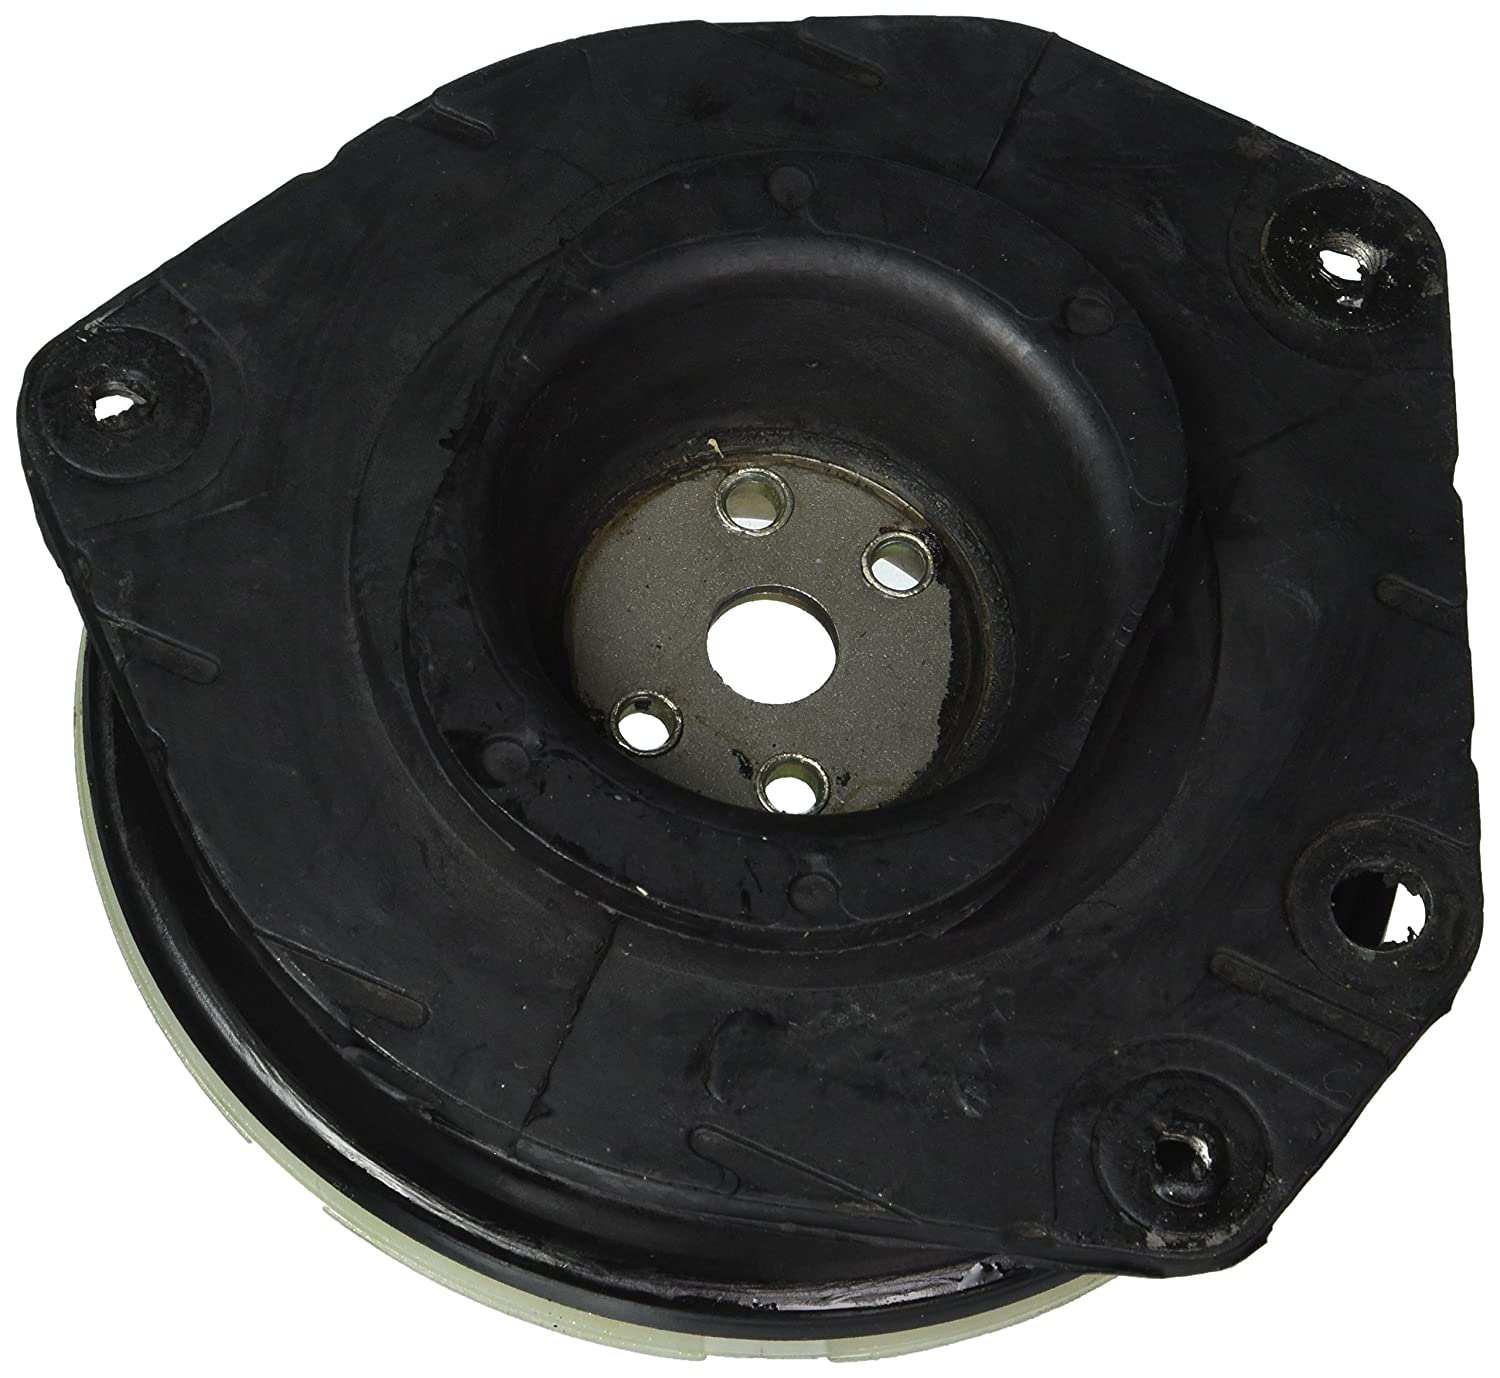 Amazon.com: Eagle BHP 5284 Motor Megane II Renault Scenic Strut Mount 2.0L Front Right or Left: Automotive